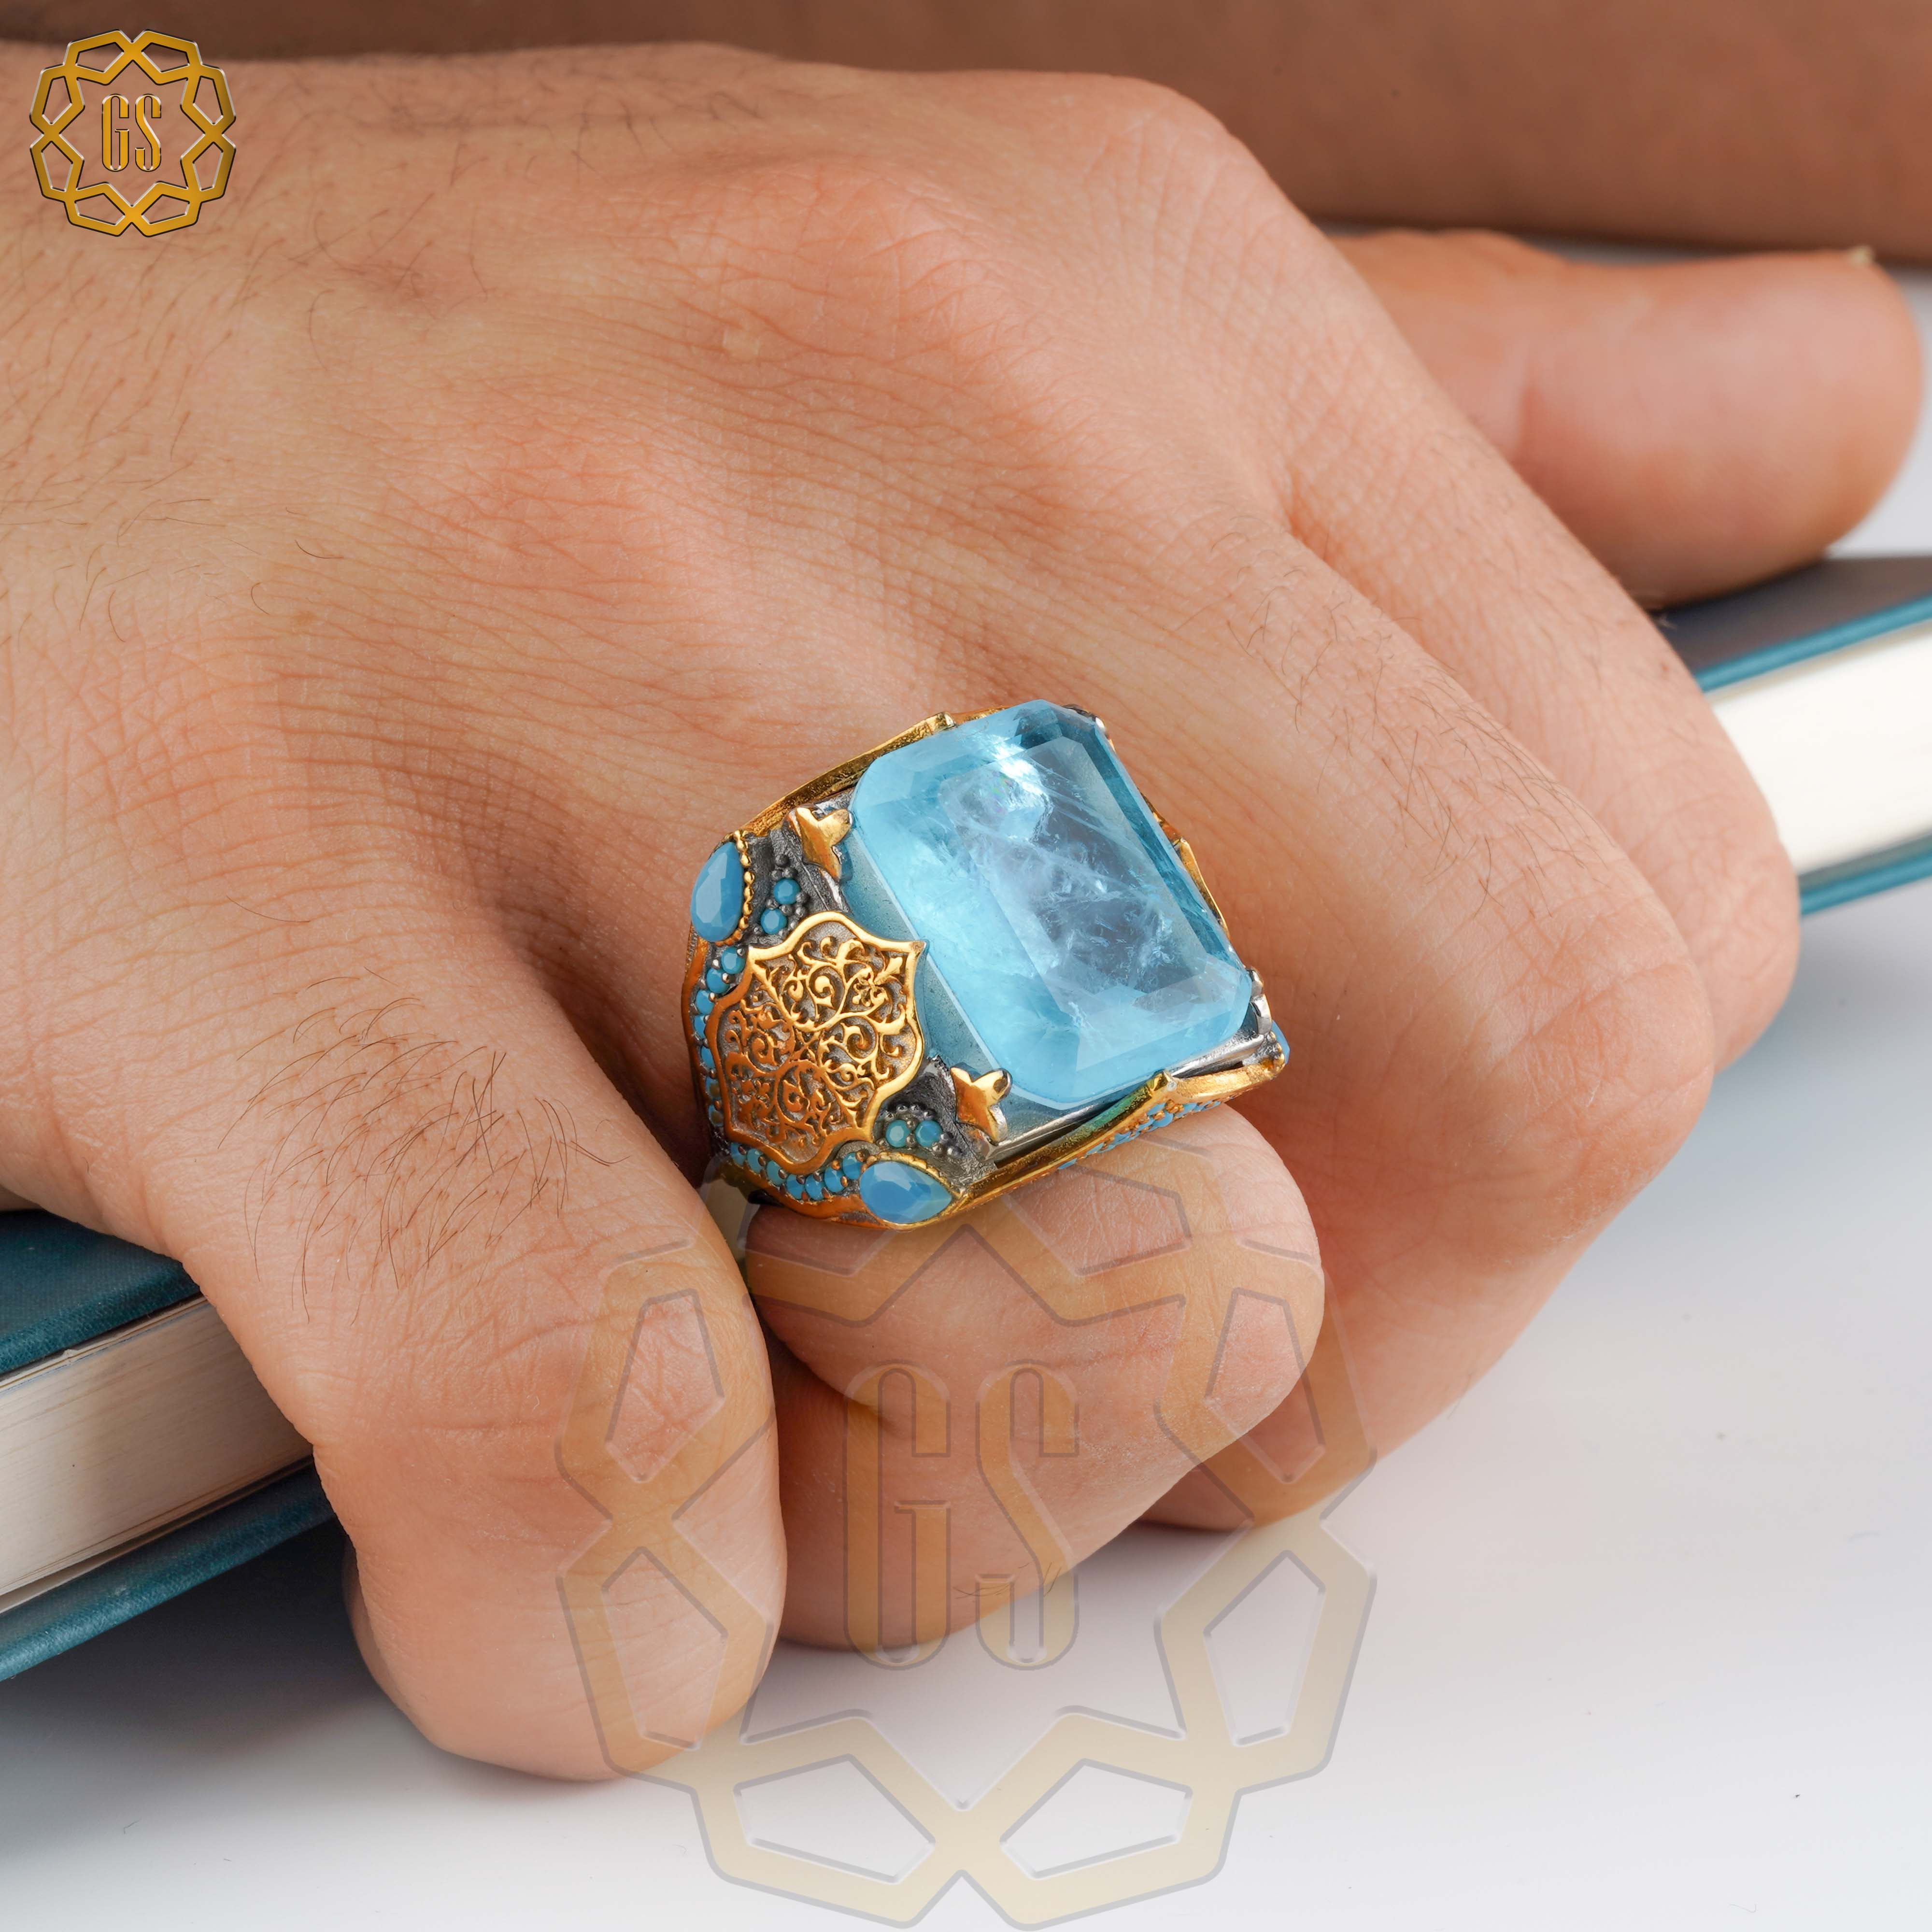 Silver Ring For Men 925 Made in Turkey With Zircon Stone .. Guaranteed High Quality .. Turkish Jewelry